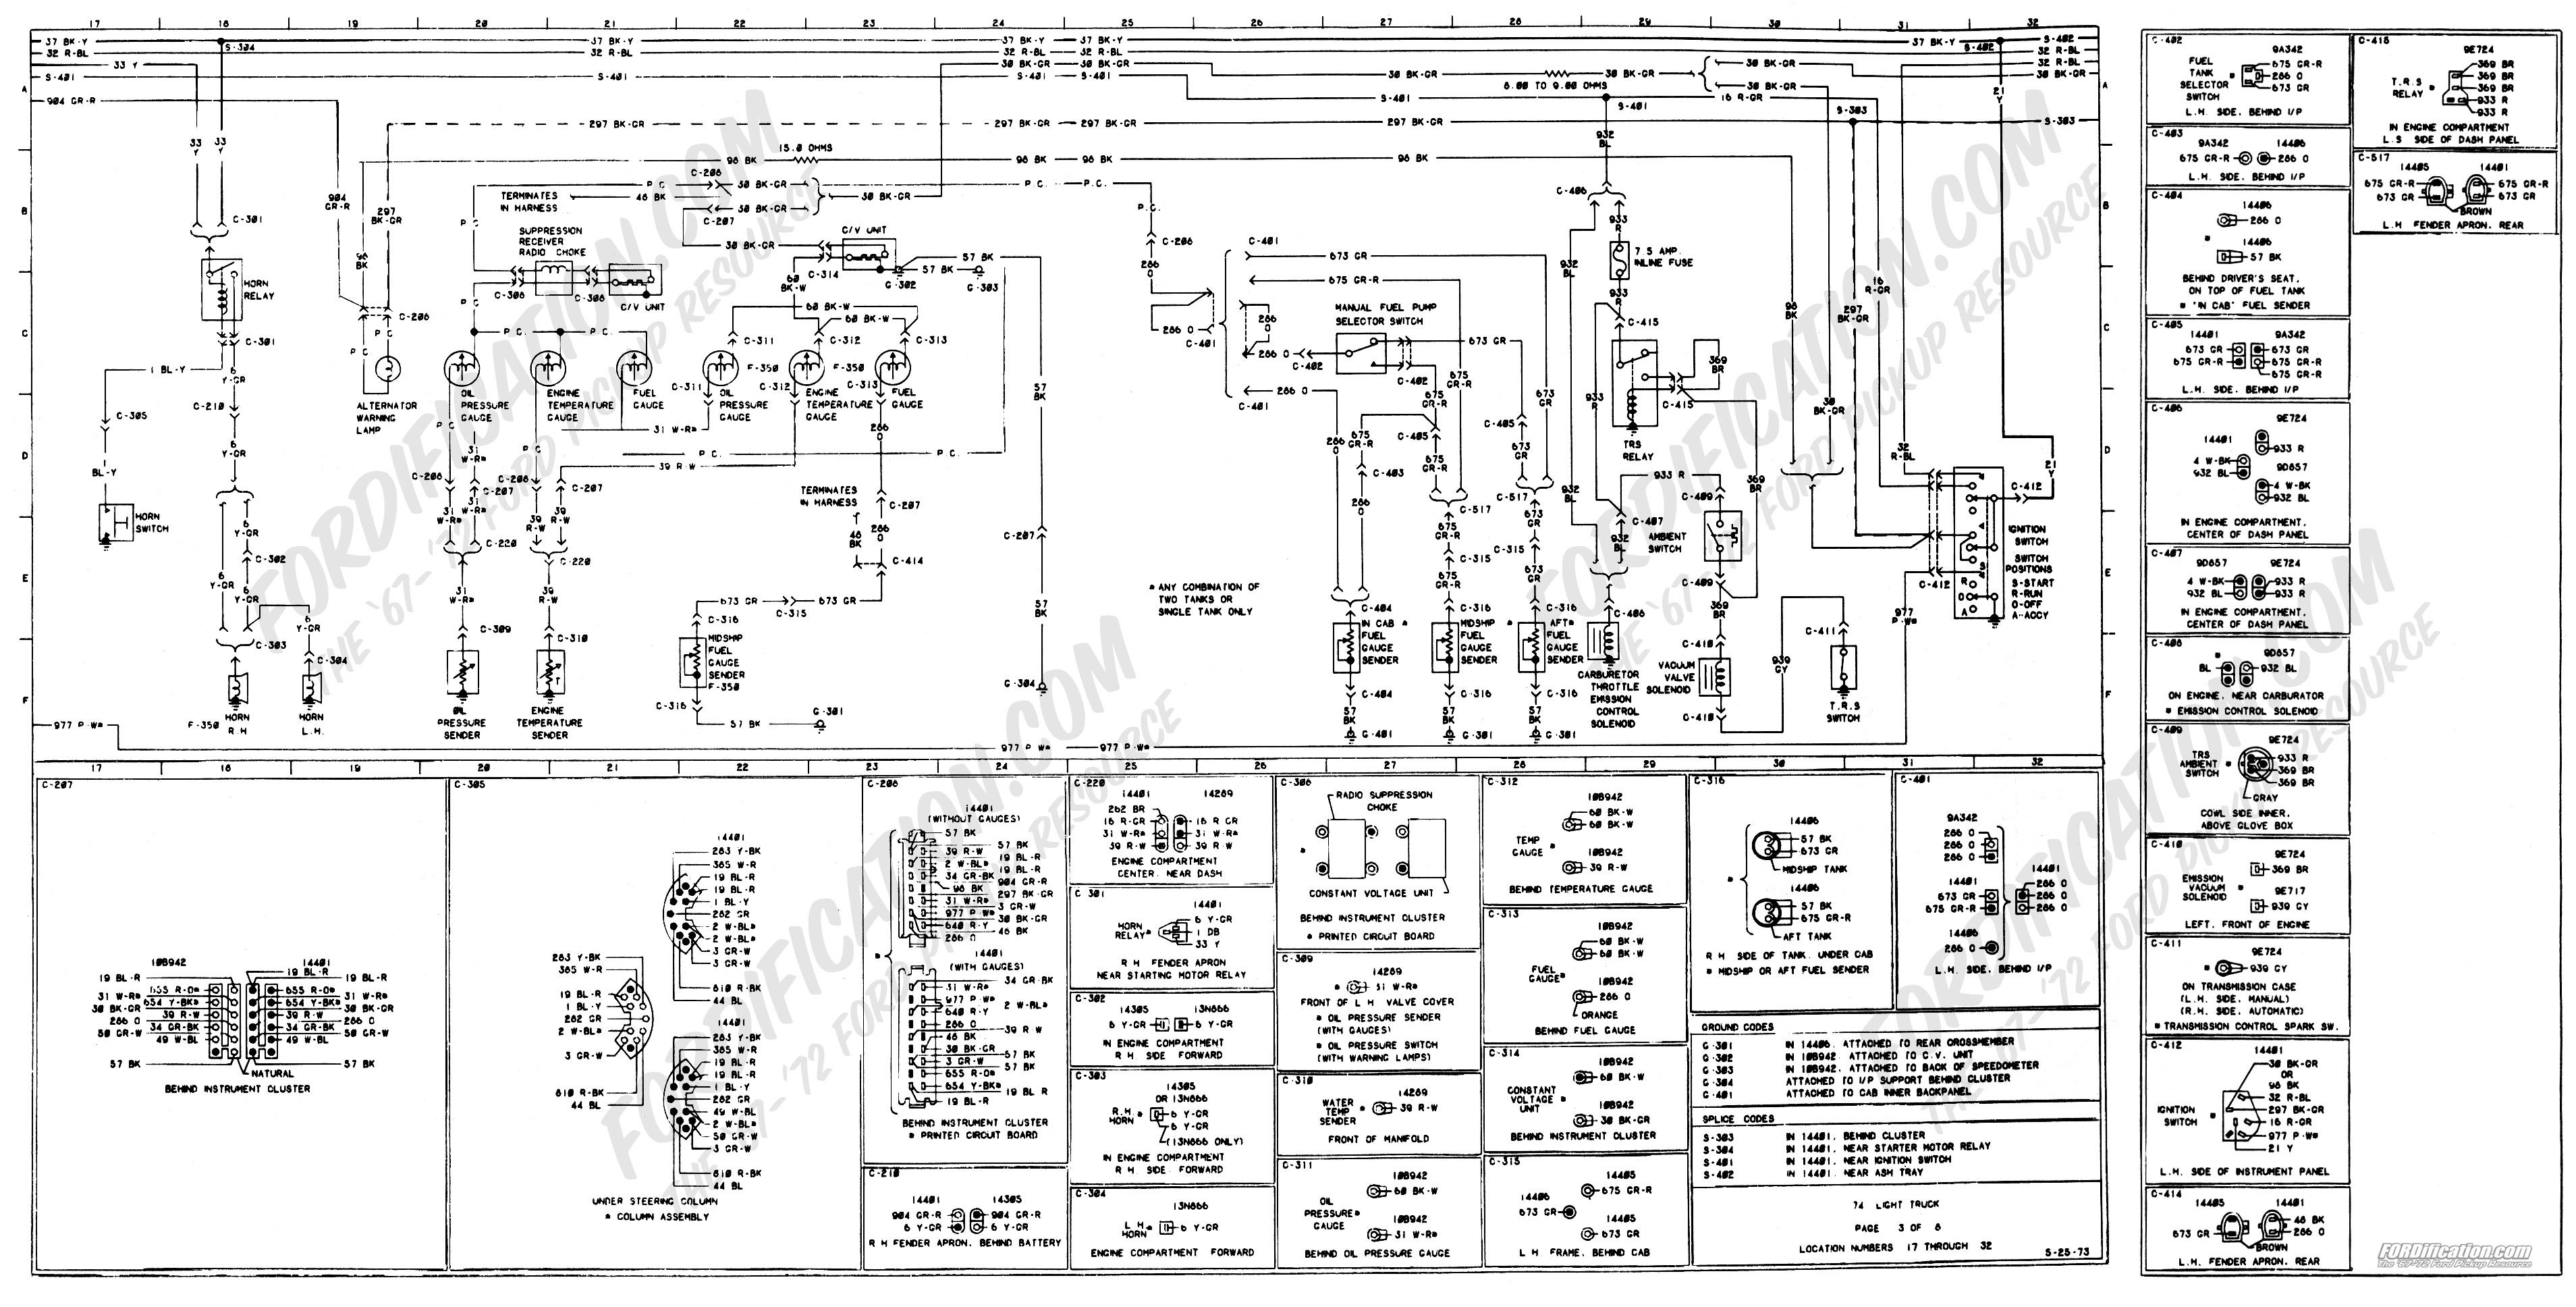 ford charging system wiring diagram cat6 rj45 socket 460 engine